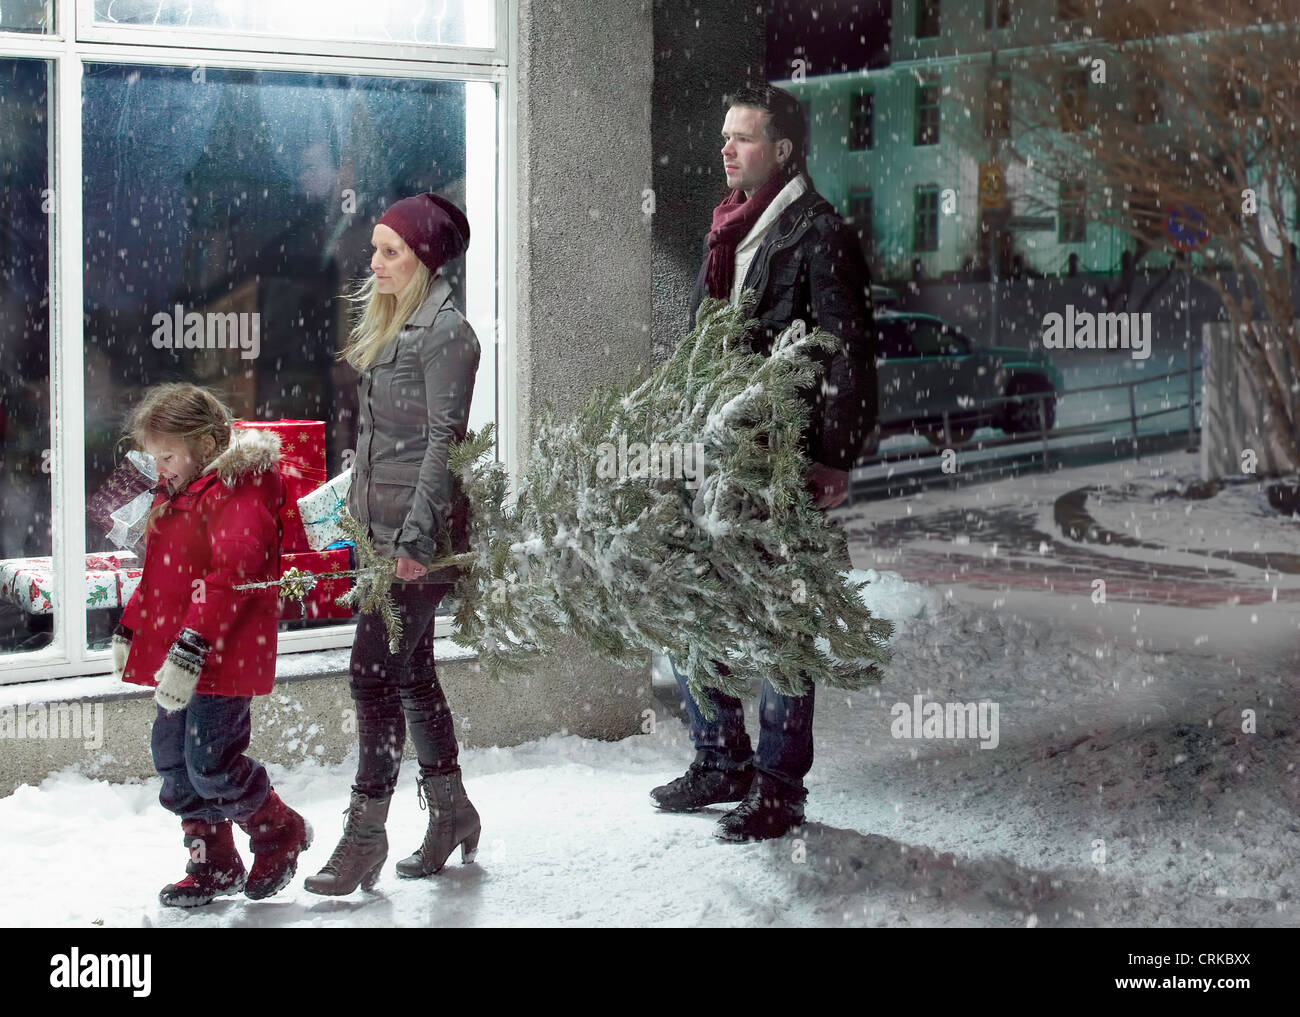 Family carrying Christmas tree in snow - Stock Image